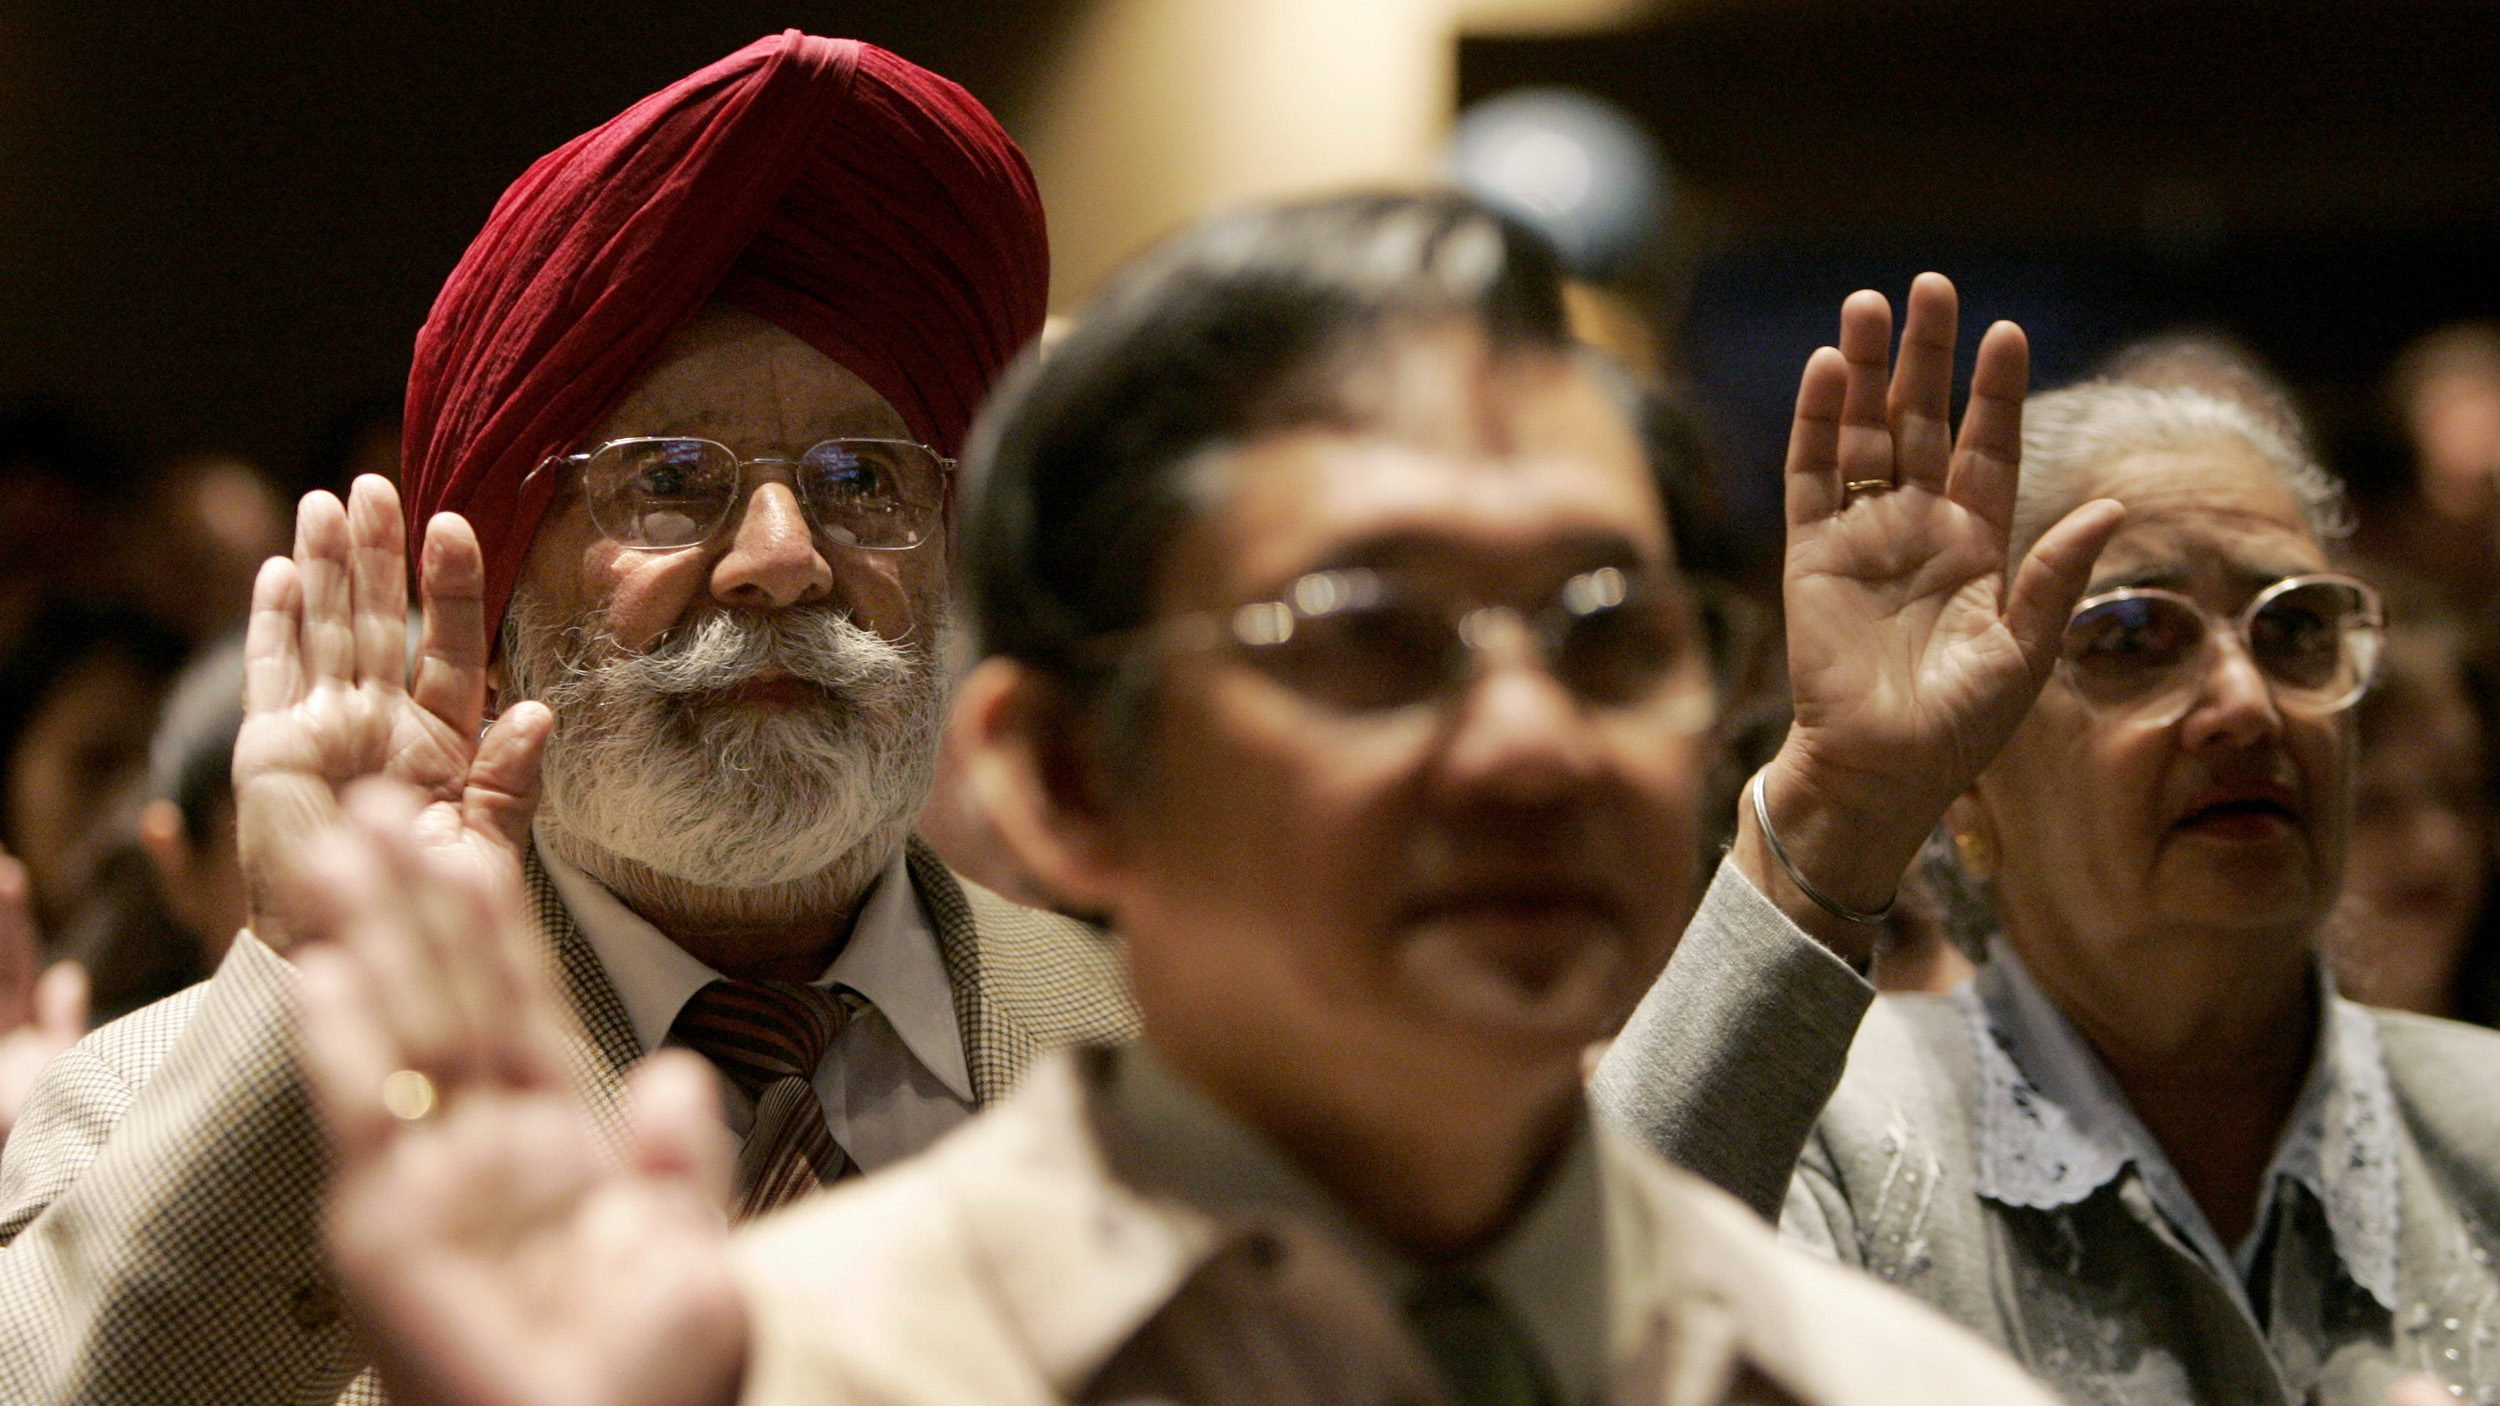 Gurdarshan Gill (rear L) of India takes the oath to become a U.S. citizen during a naturalization ceremony, with more than 1,400 people from 100 countries becoming new U.S. citizens, in San Francisco, California May 22, 2007.  REUTERS/Robert Galbraith  (UNITED STATES) - RTR1PZAC